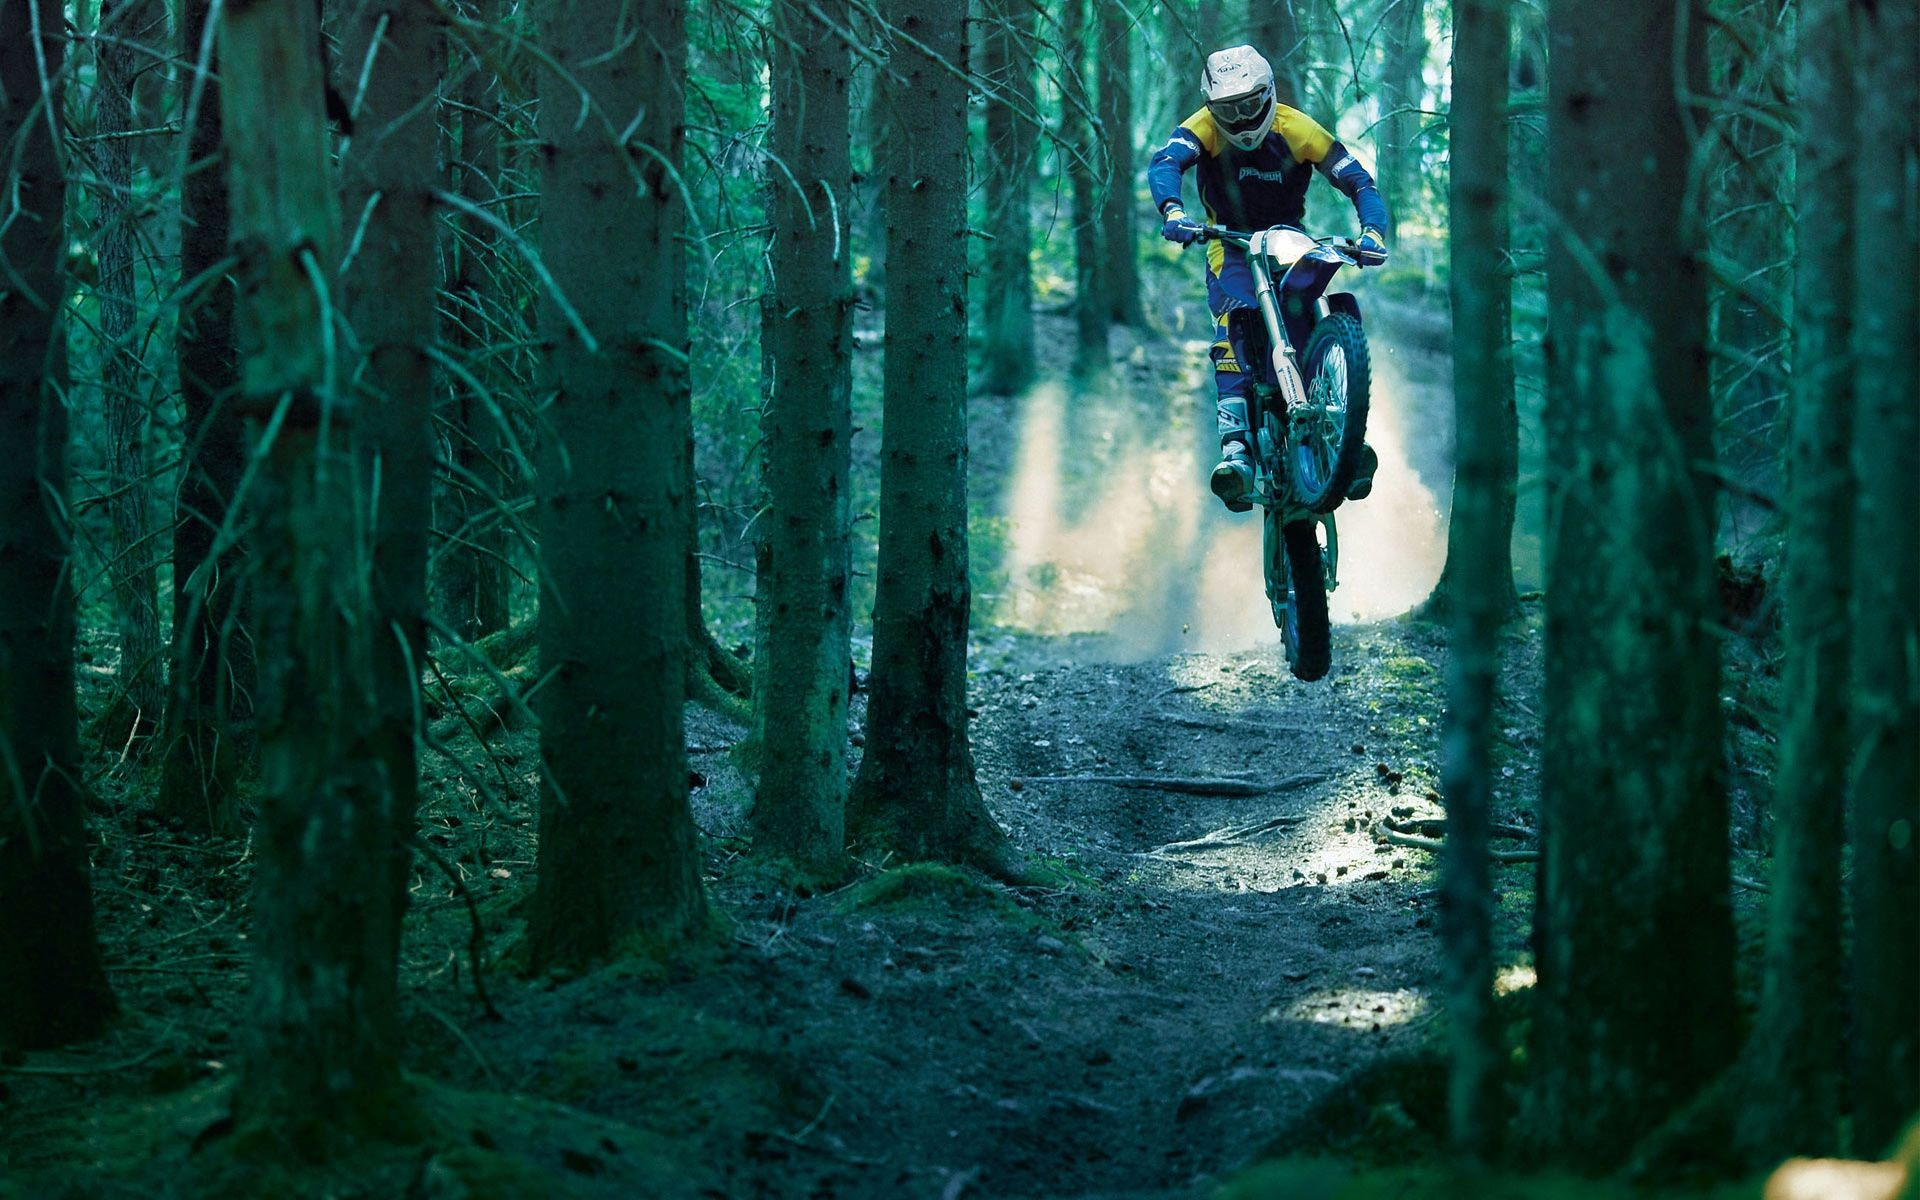 a dense forest trail dust jump the motorcyclist